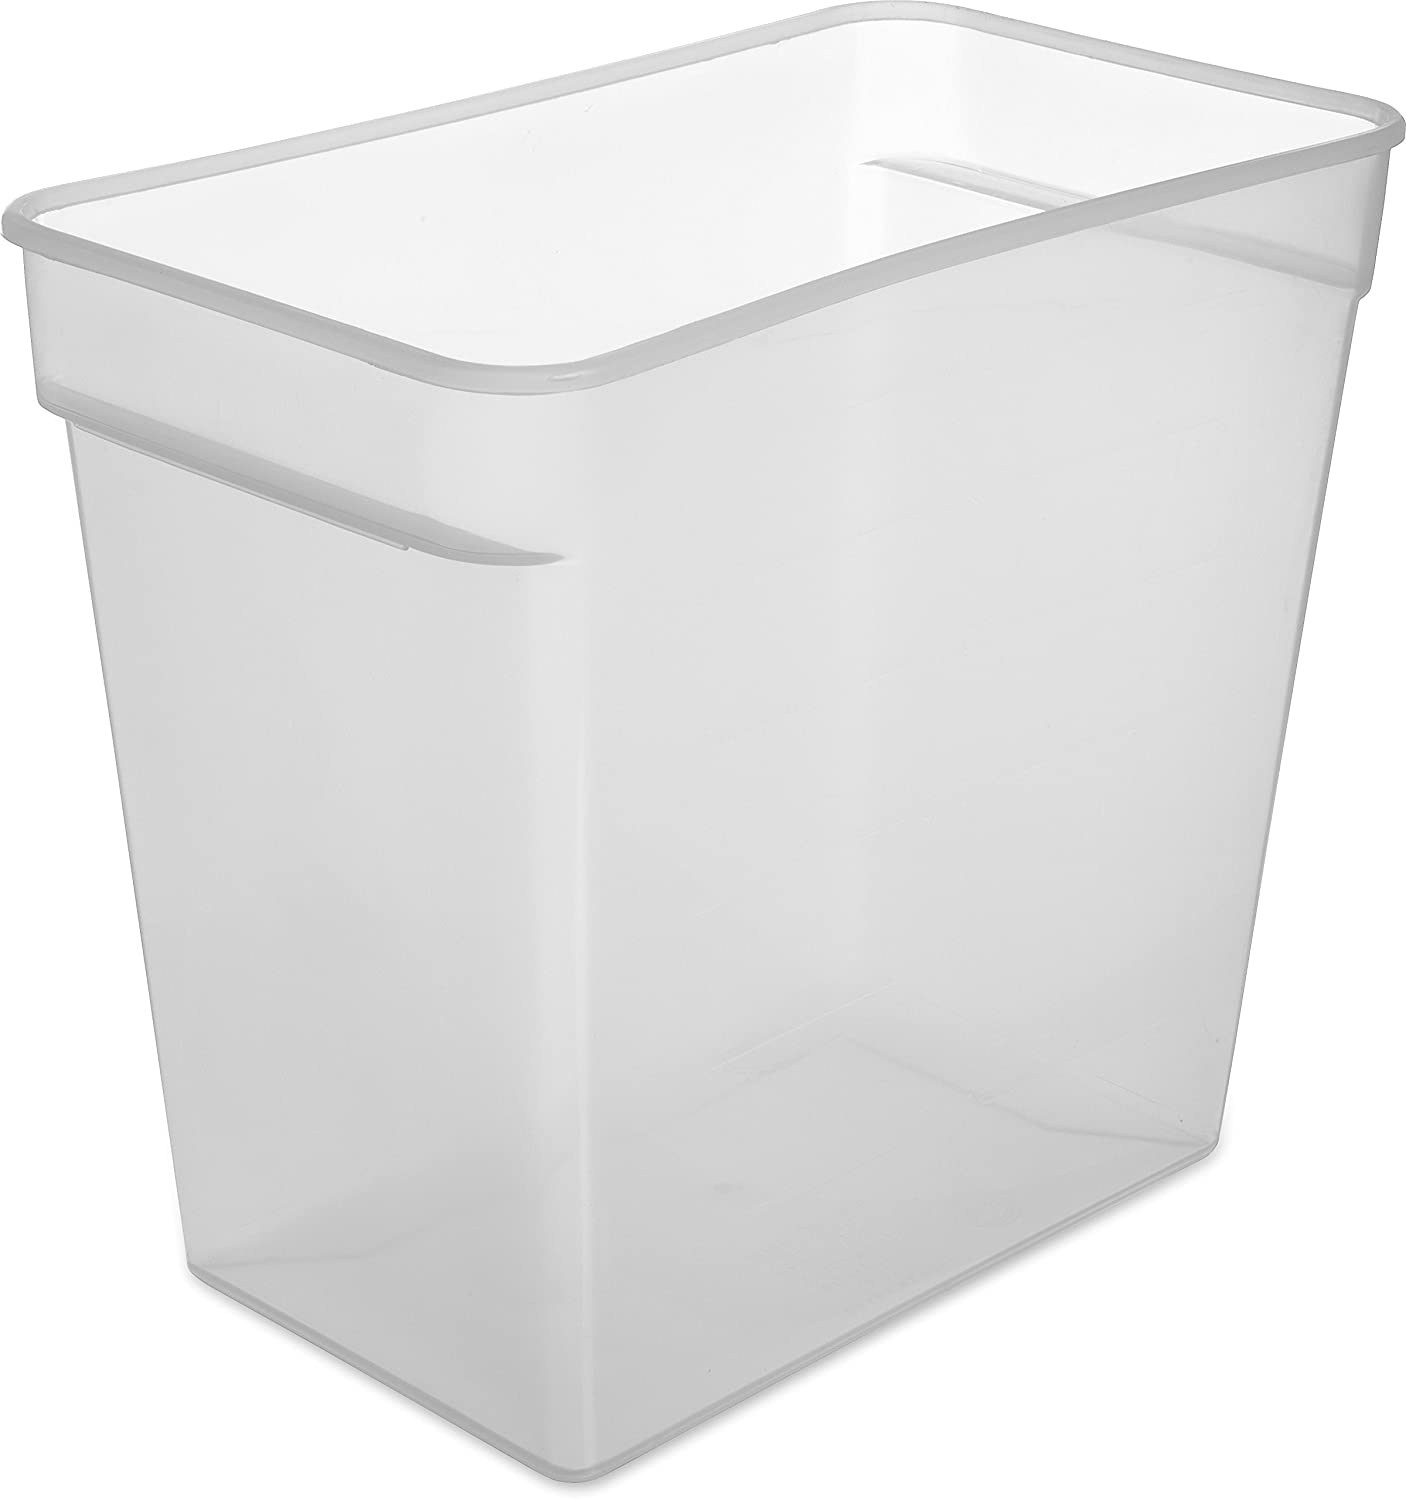 Carlisle ST162930 StorPlus BPA-Free Food Storage Container Only, 18 Quart, Clear (Pack of 6)